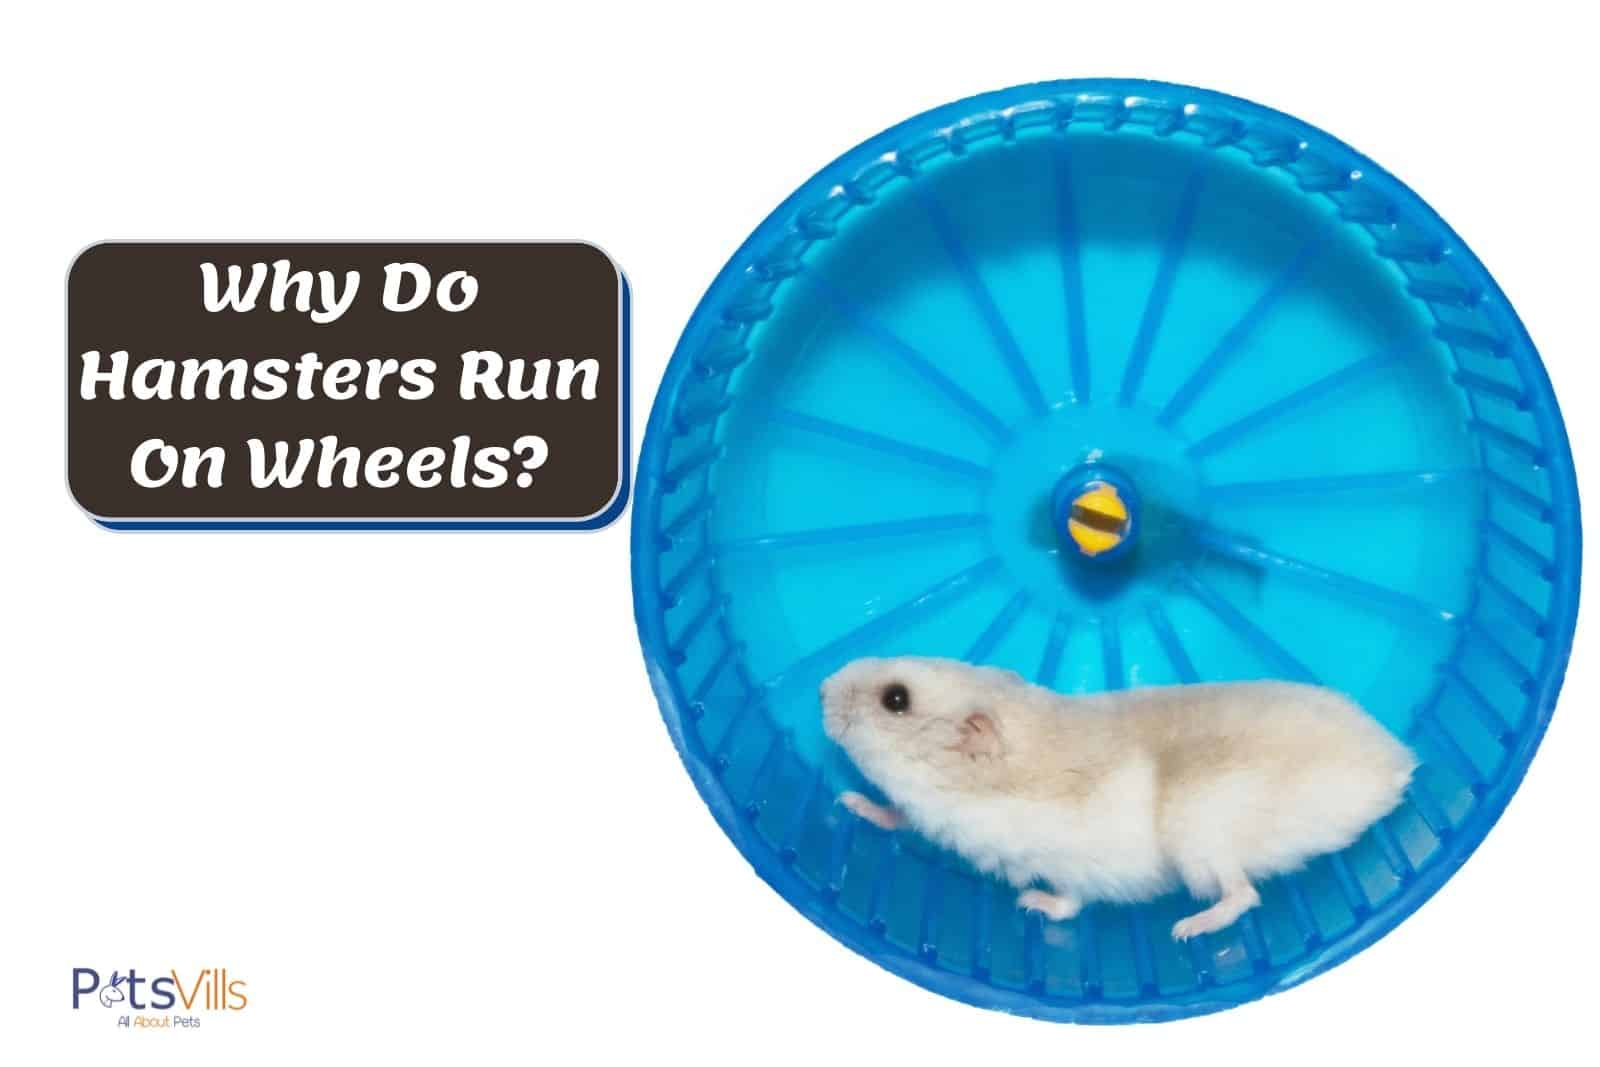 cute hamster running on his blue exercise wheels but why do hamsters run on wheels?